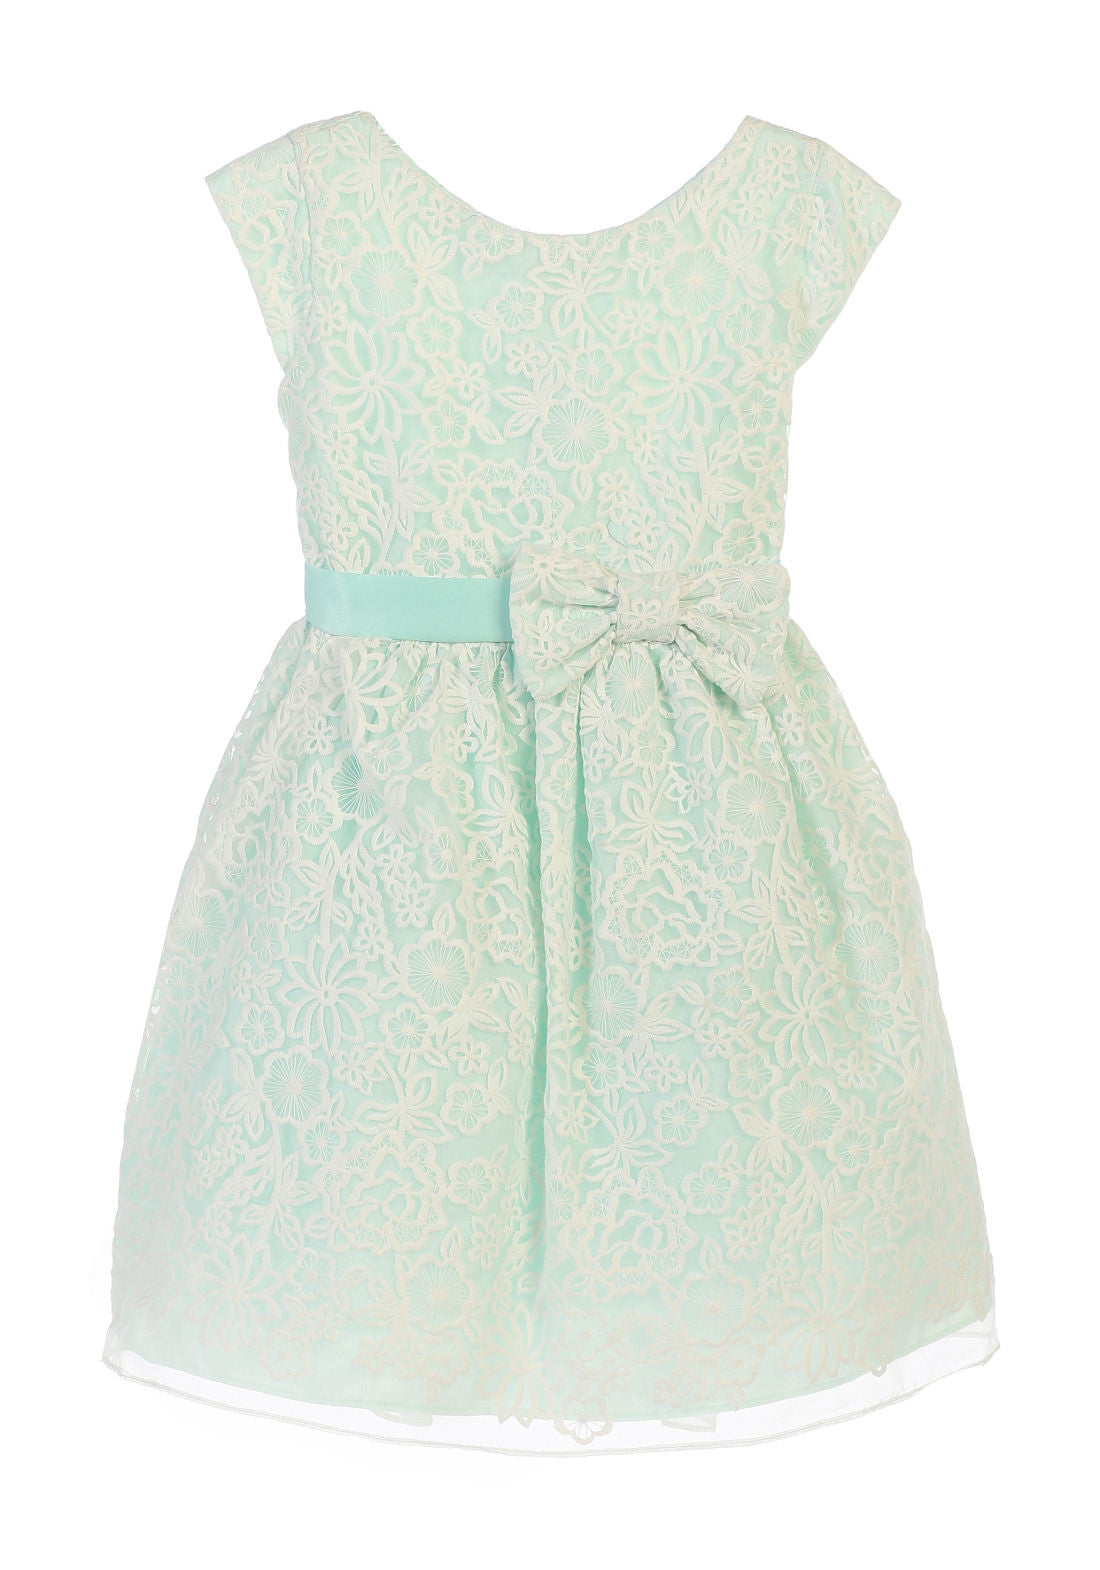 SWEET KIDS BOUQUET EMBROIDERED ORGANZA FLOWER GIRL MINT DRESS - SK626 - Young Timers Boutique  - 1